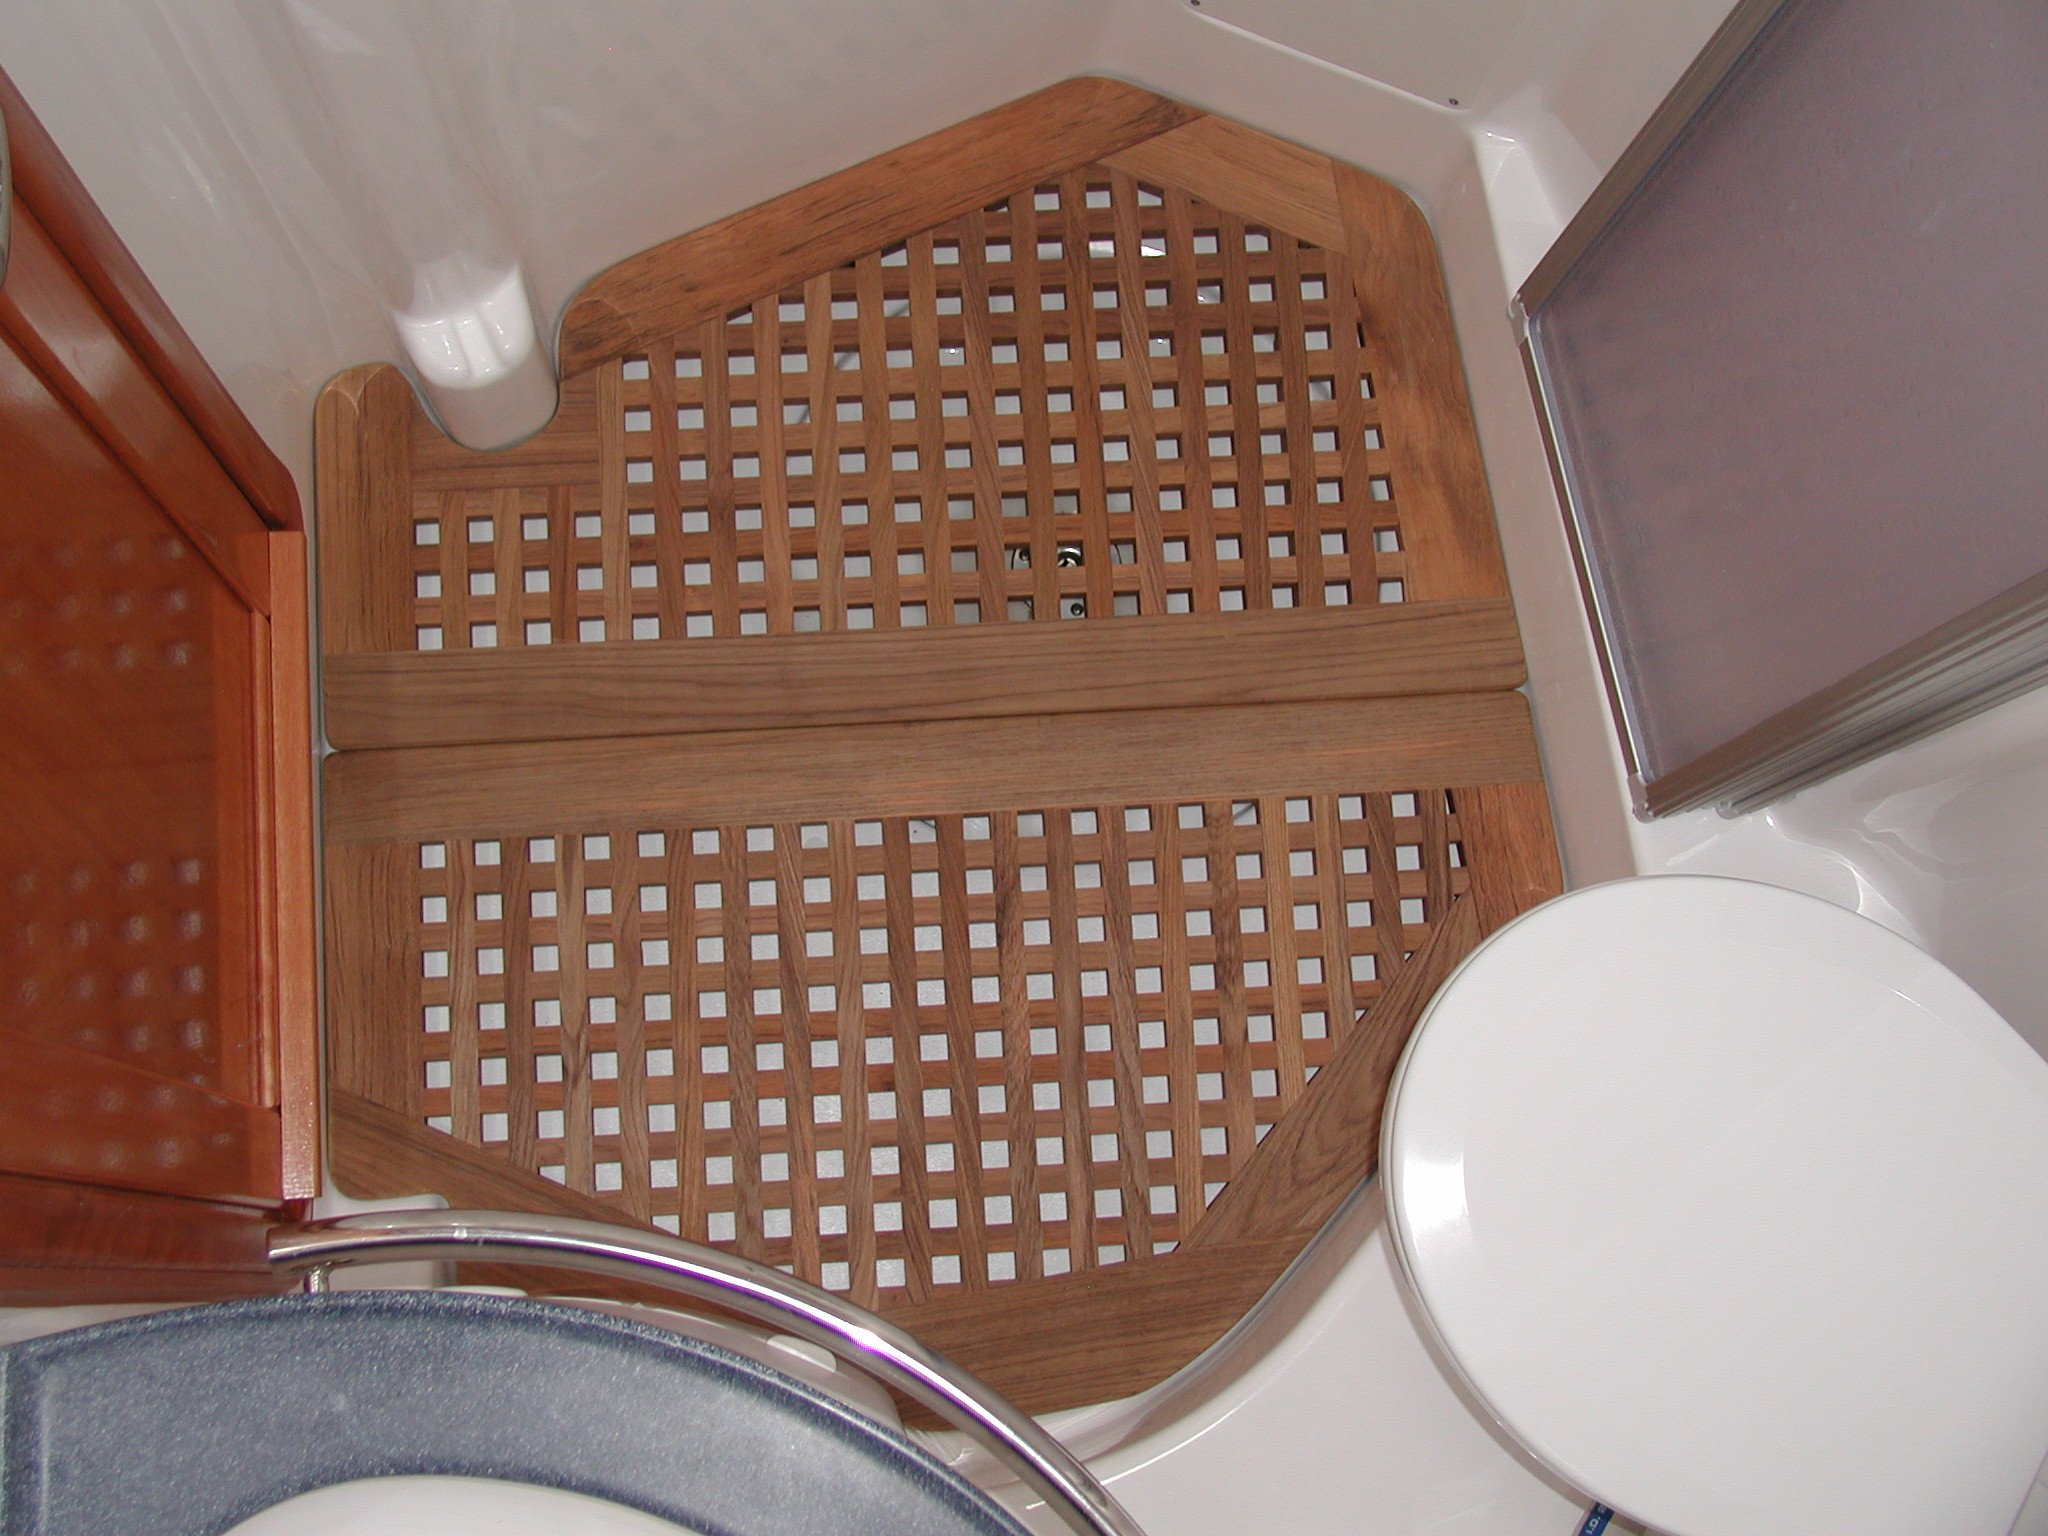 View on a grating for a head, Bavaria powerboat